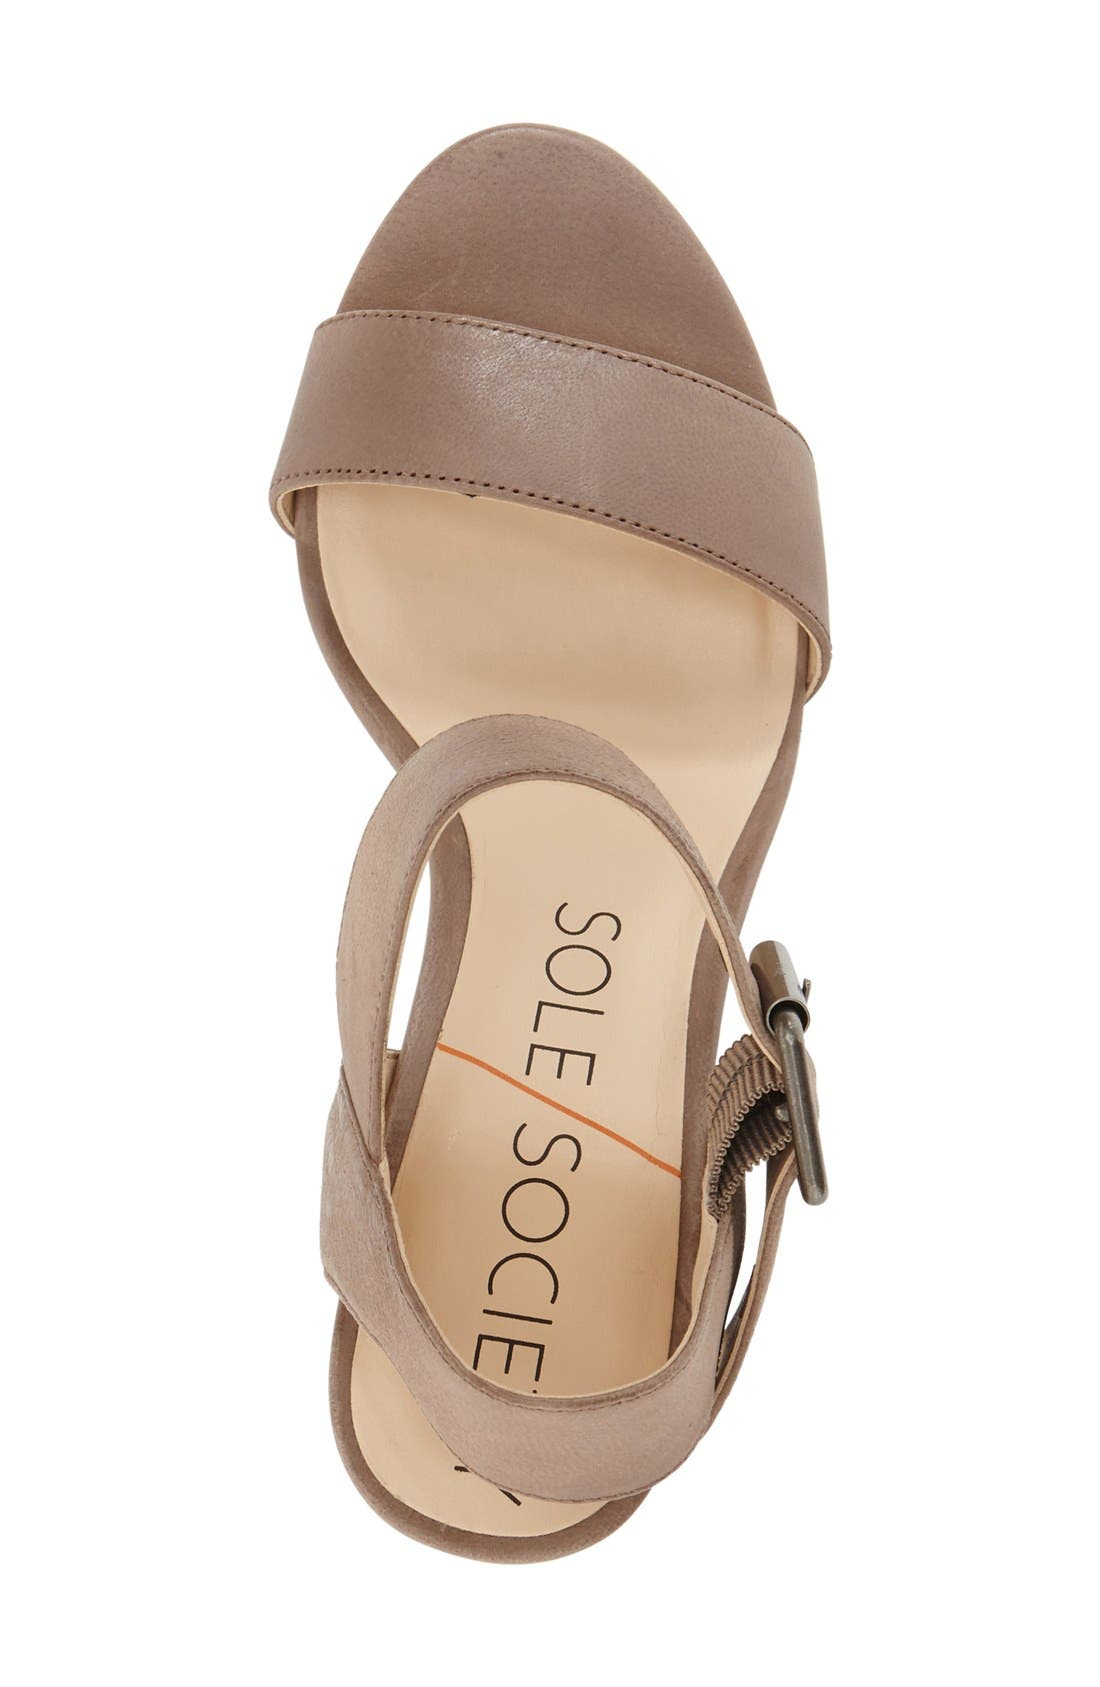 'Missy' Sandal,                             Alternate thumbnail 3, color,                             Taupe Wax Leather